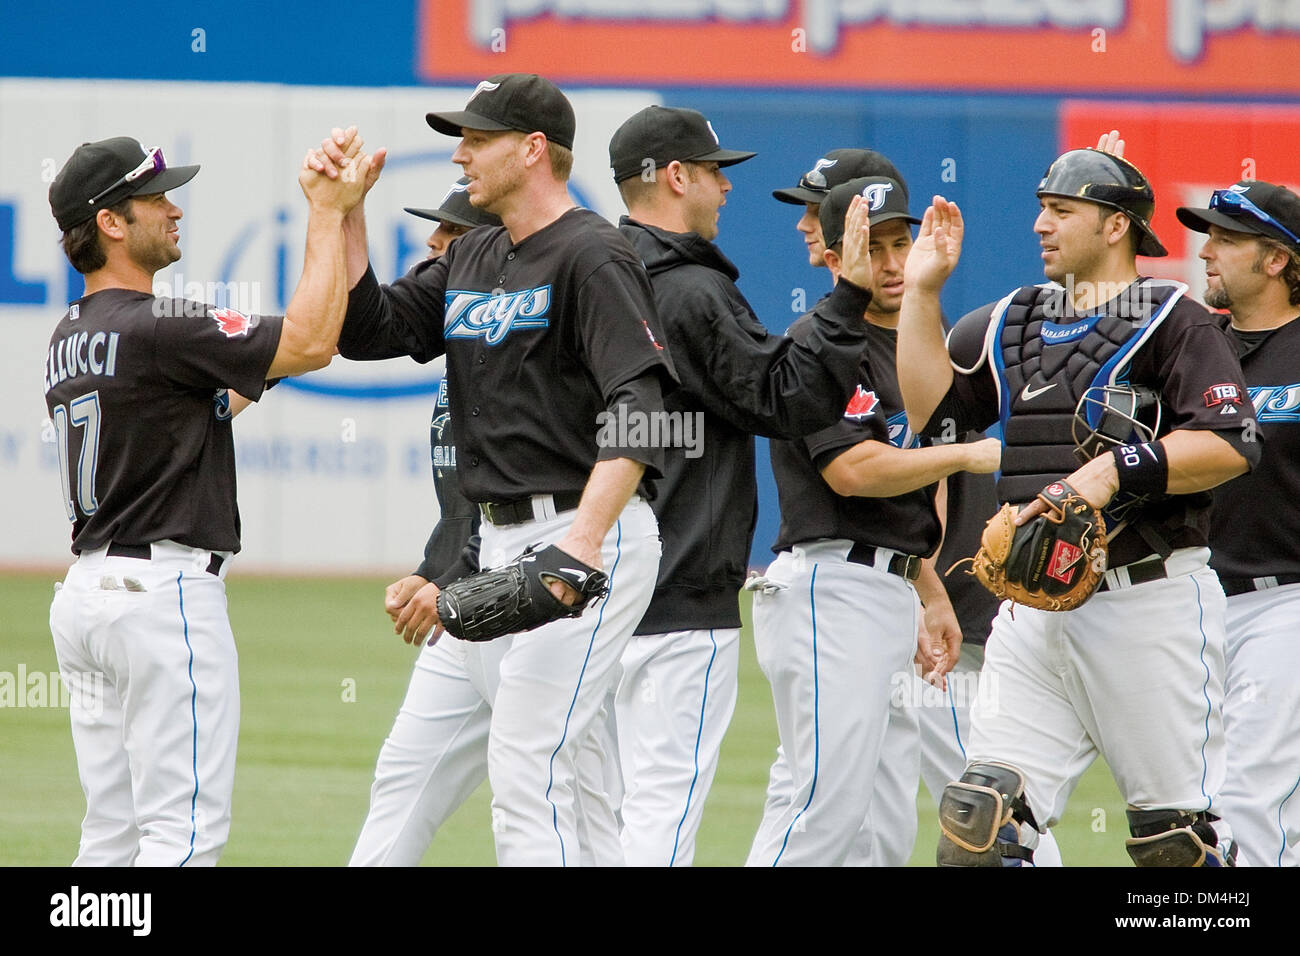 Roy ''Doc'' Halladay and the Toronto Bue Jays celebrate their 3-1 victory over the Boston Red Sox. Halladay earned his 11th victory of the season, at the Rogers Centre, Toronto. (Credit Image: © Terry Ting/Southcreek Global/ZUMApress.com) - Stock Image